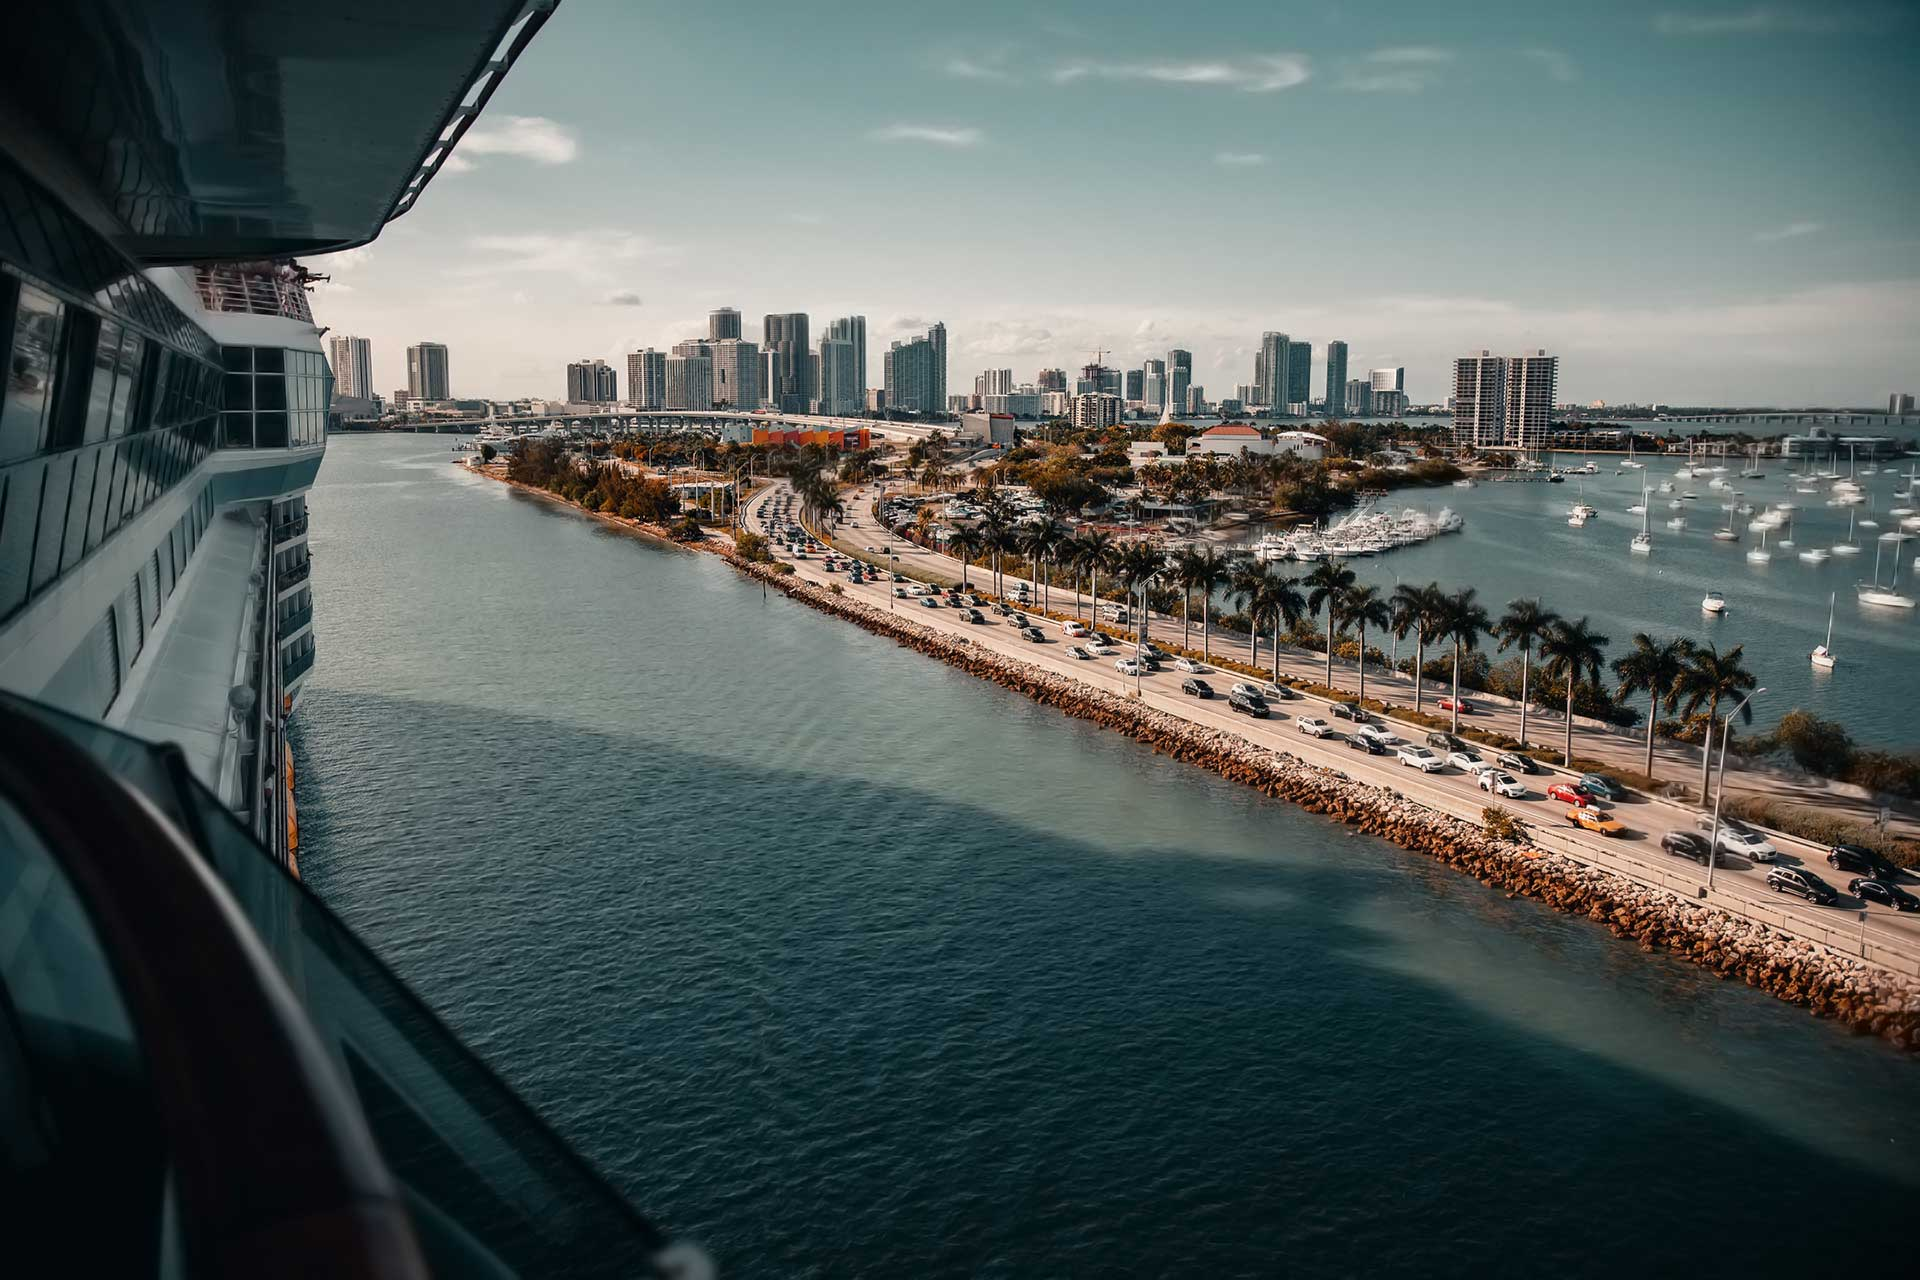 Winter in Miami: Corestate founder builds luxury resi empire from Sunshine State